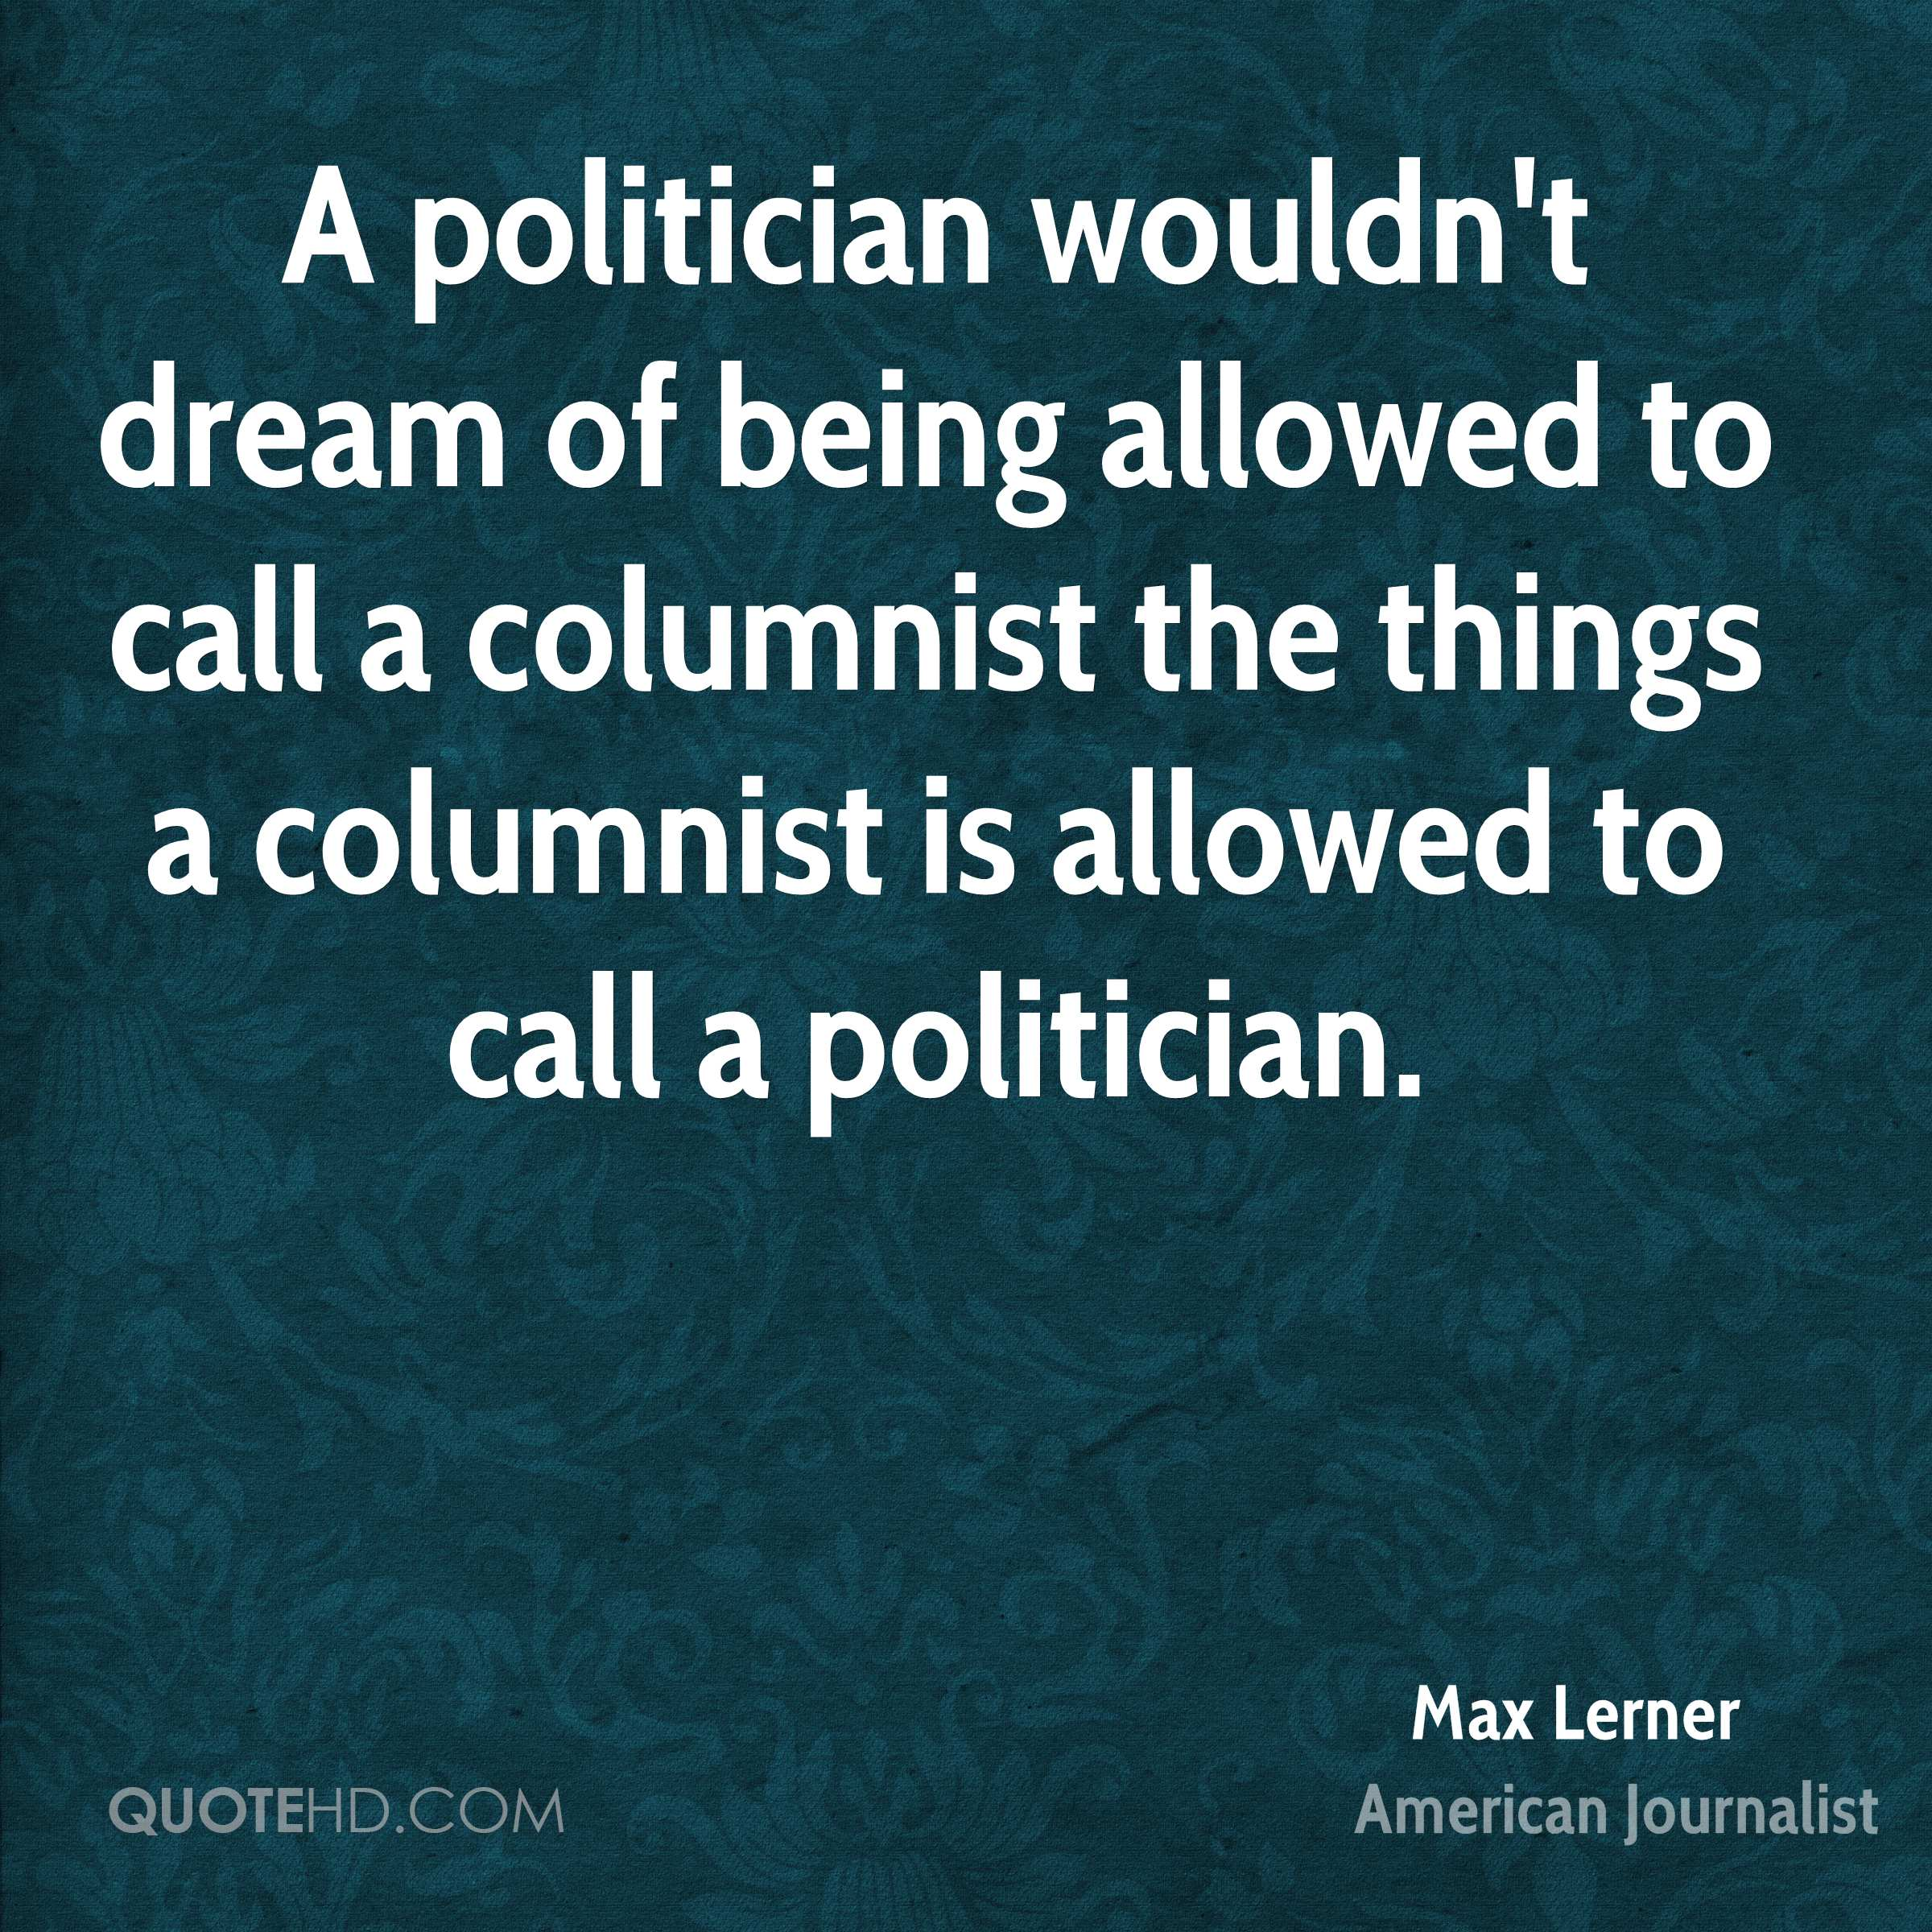 A politician wouldn't dream of being allowed to call a columnist the things a columnist is allowed to call a politician.